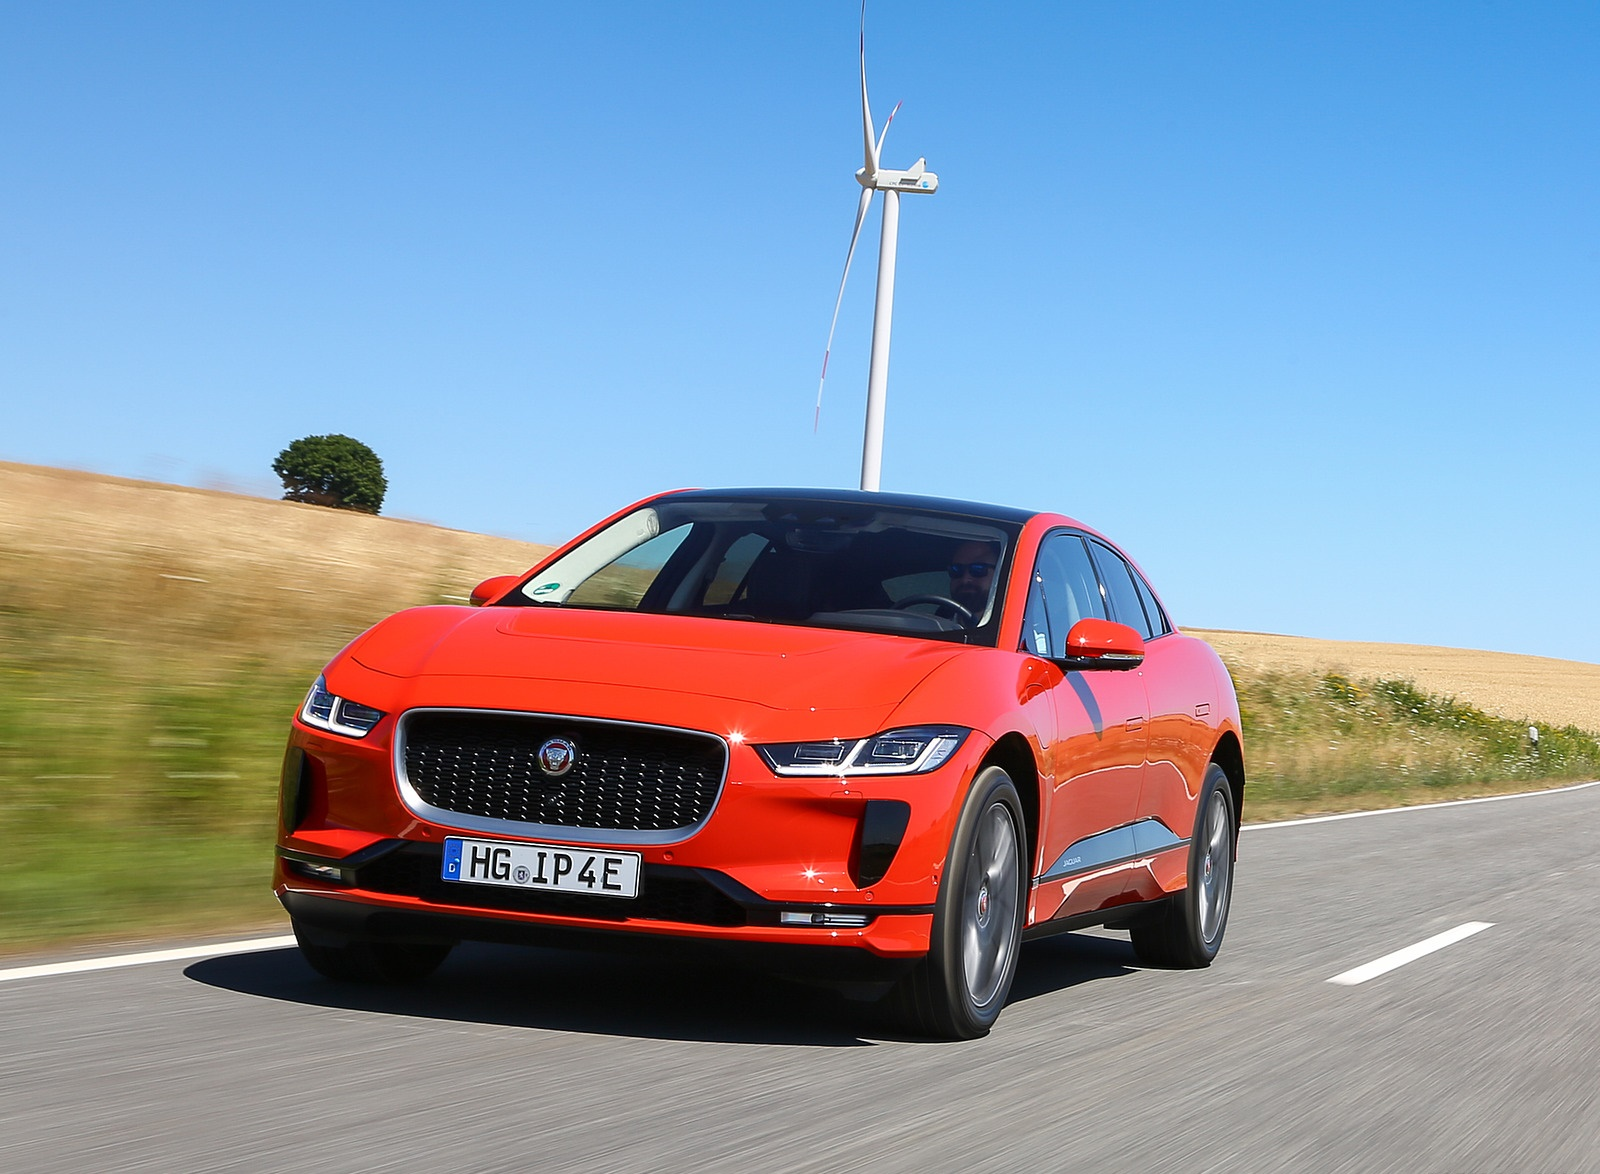 2019 Jaguar I-PACE EV400 AWD HSE First Edition (Color: Photon Red) Front Wallpapers #22 of 192